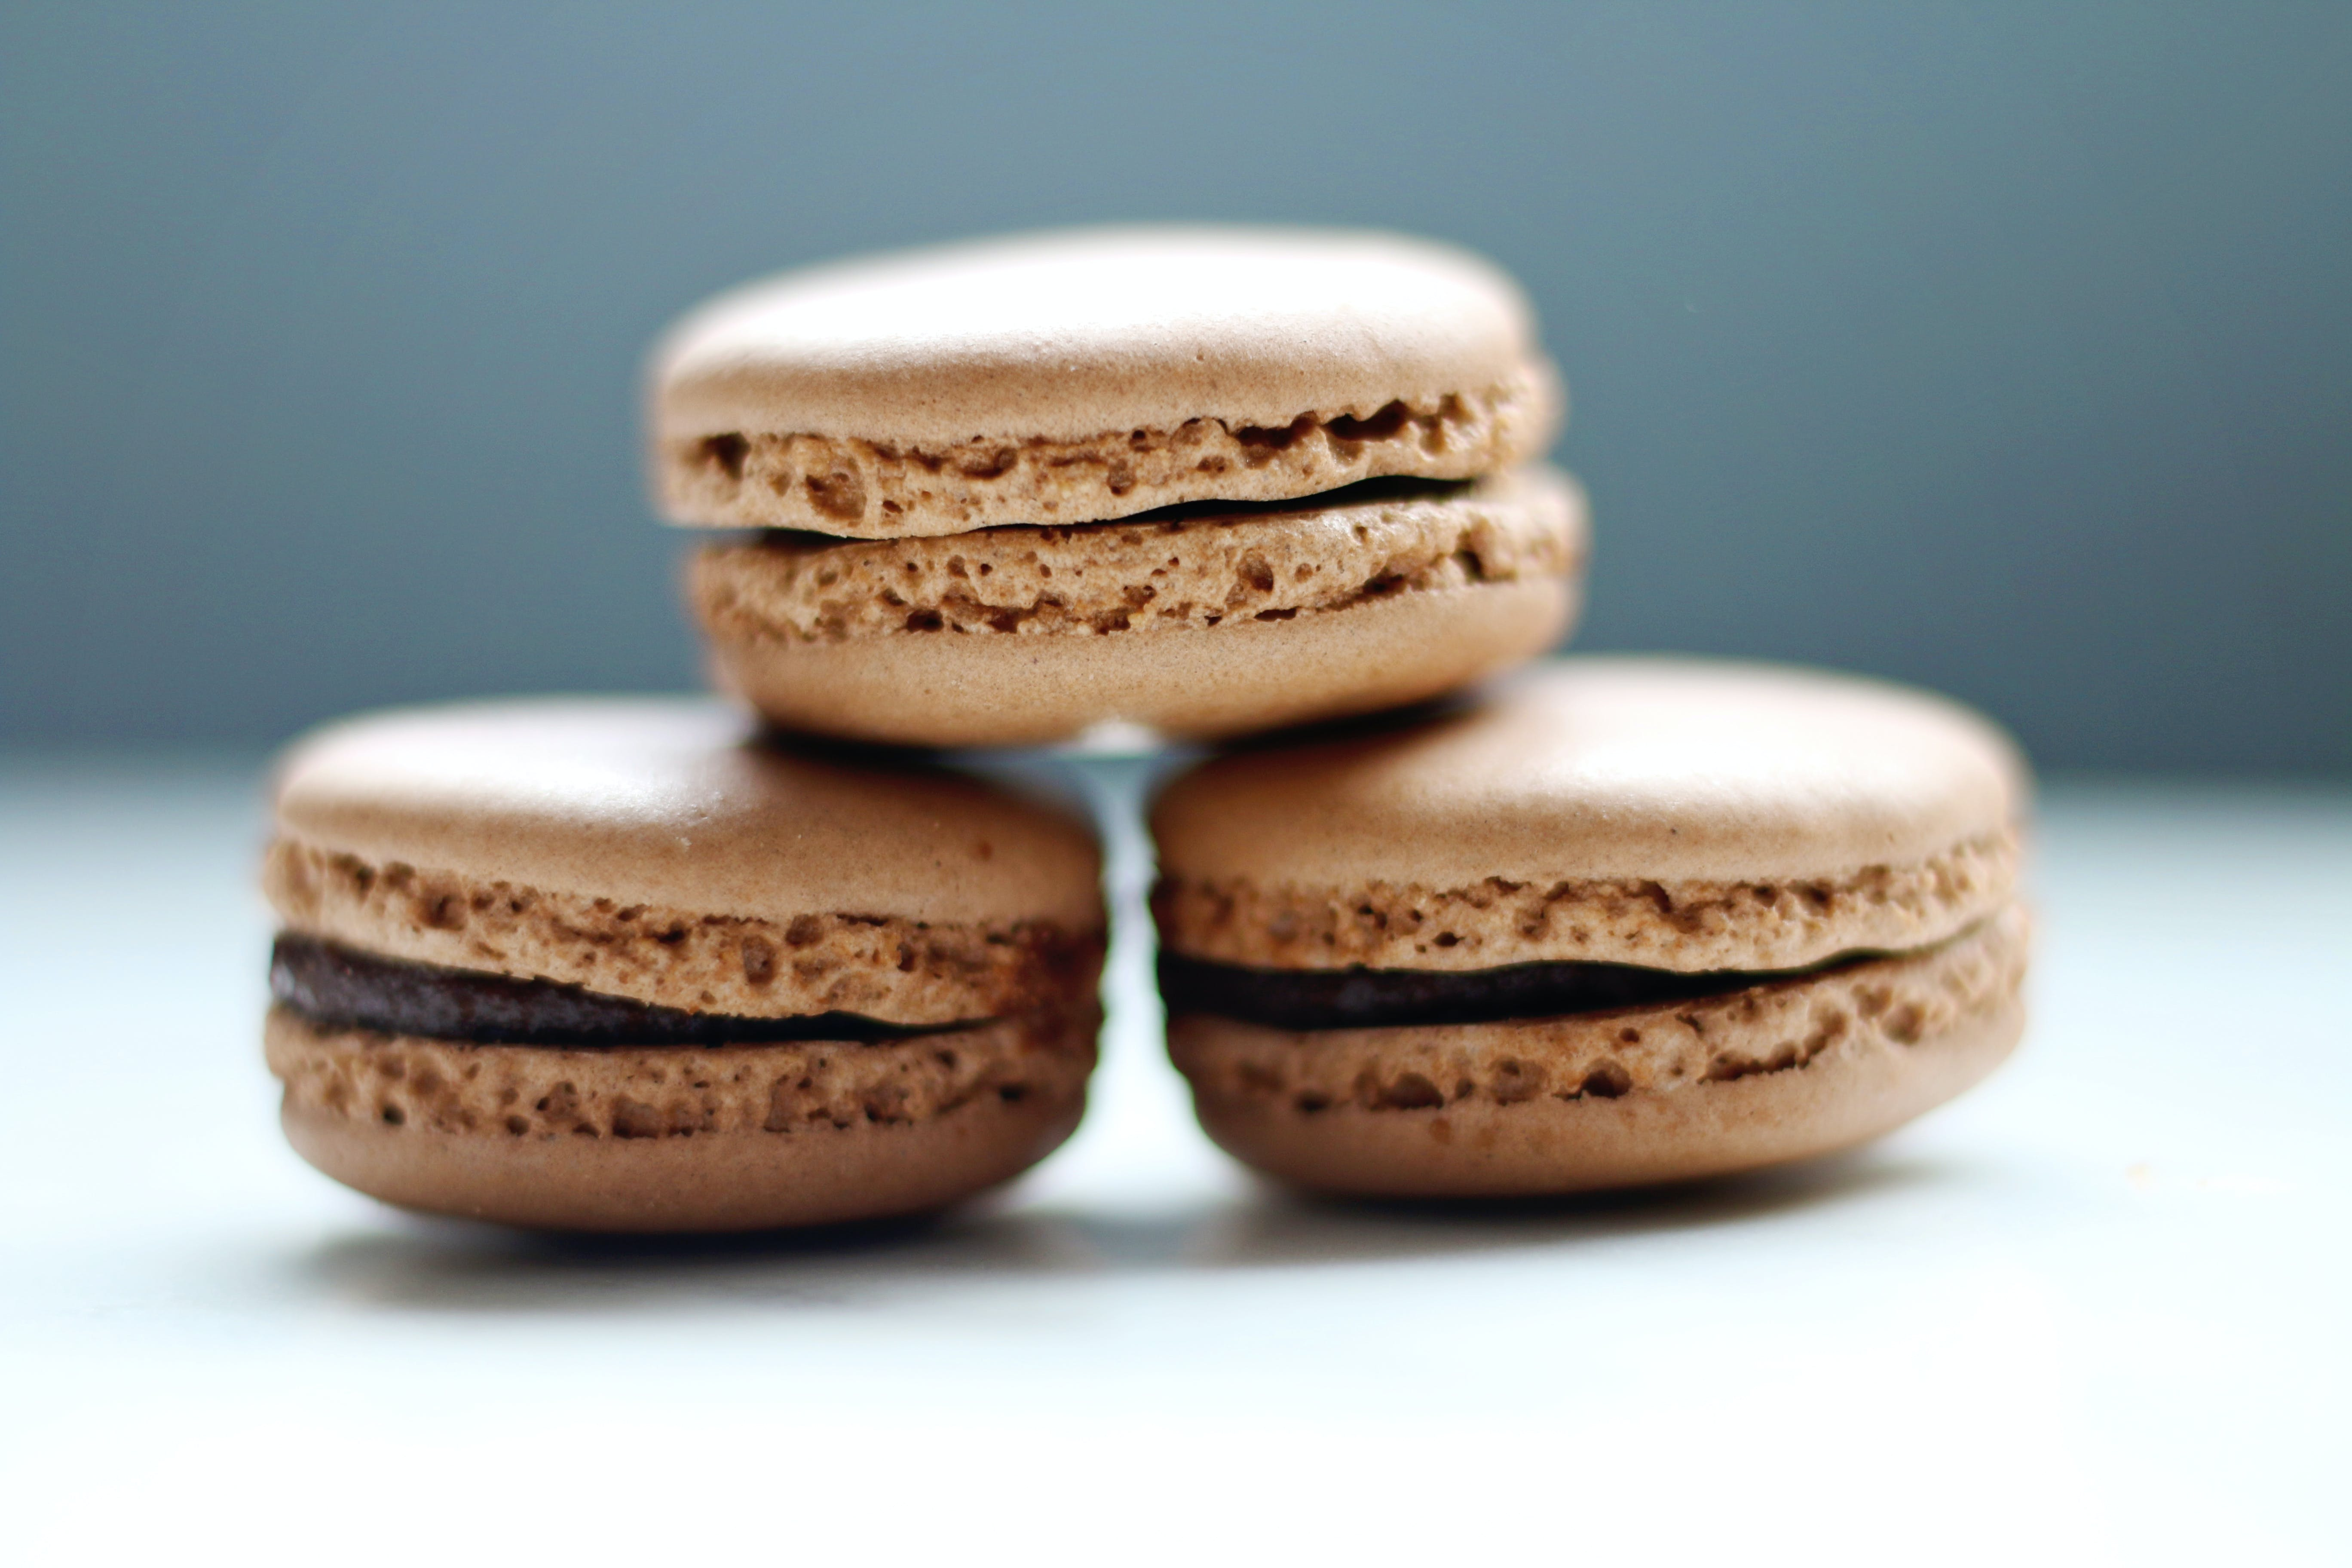 Selective Focus Photo of Three Macaroons